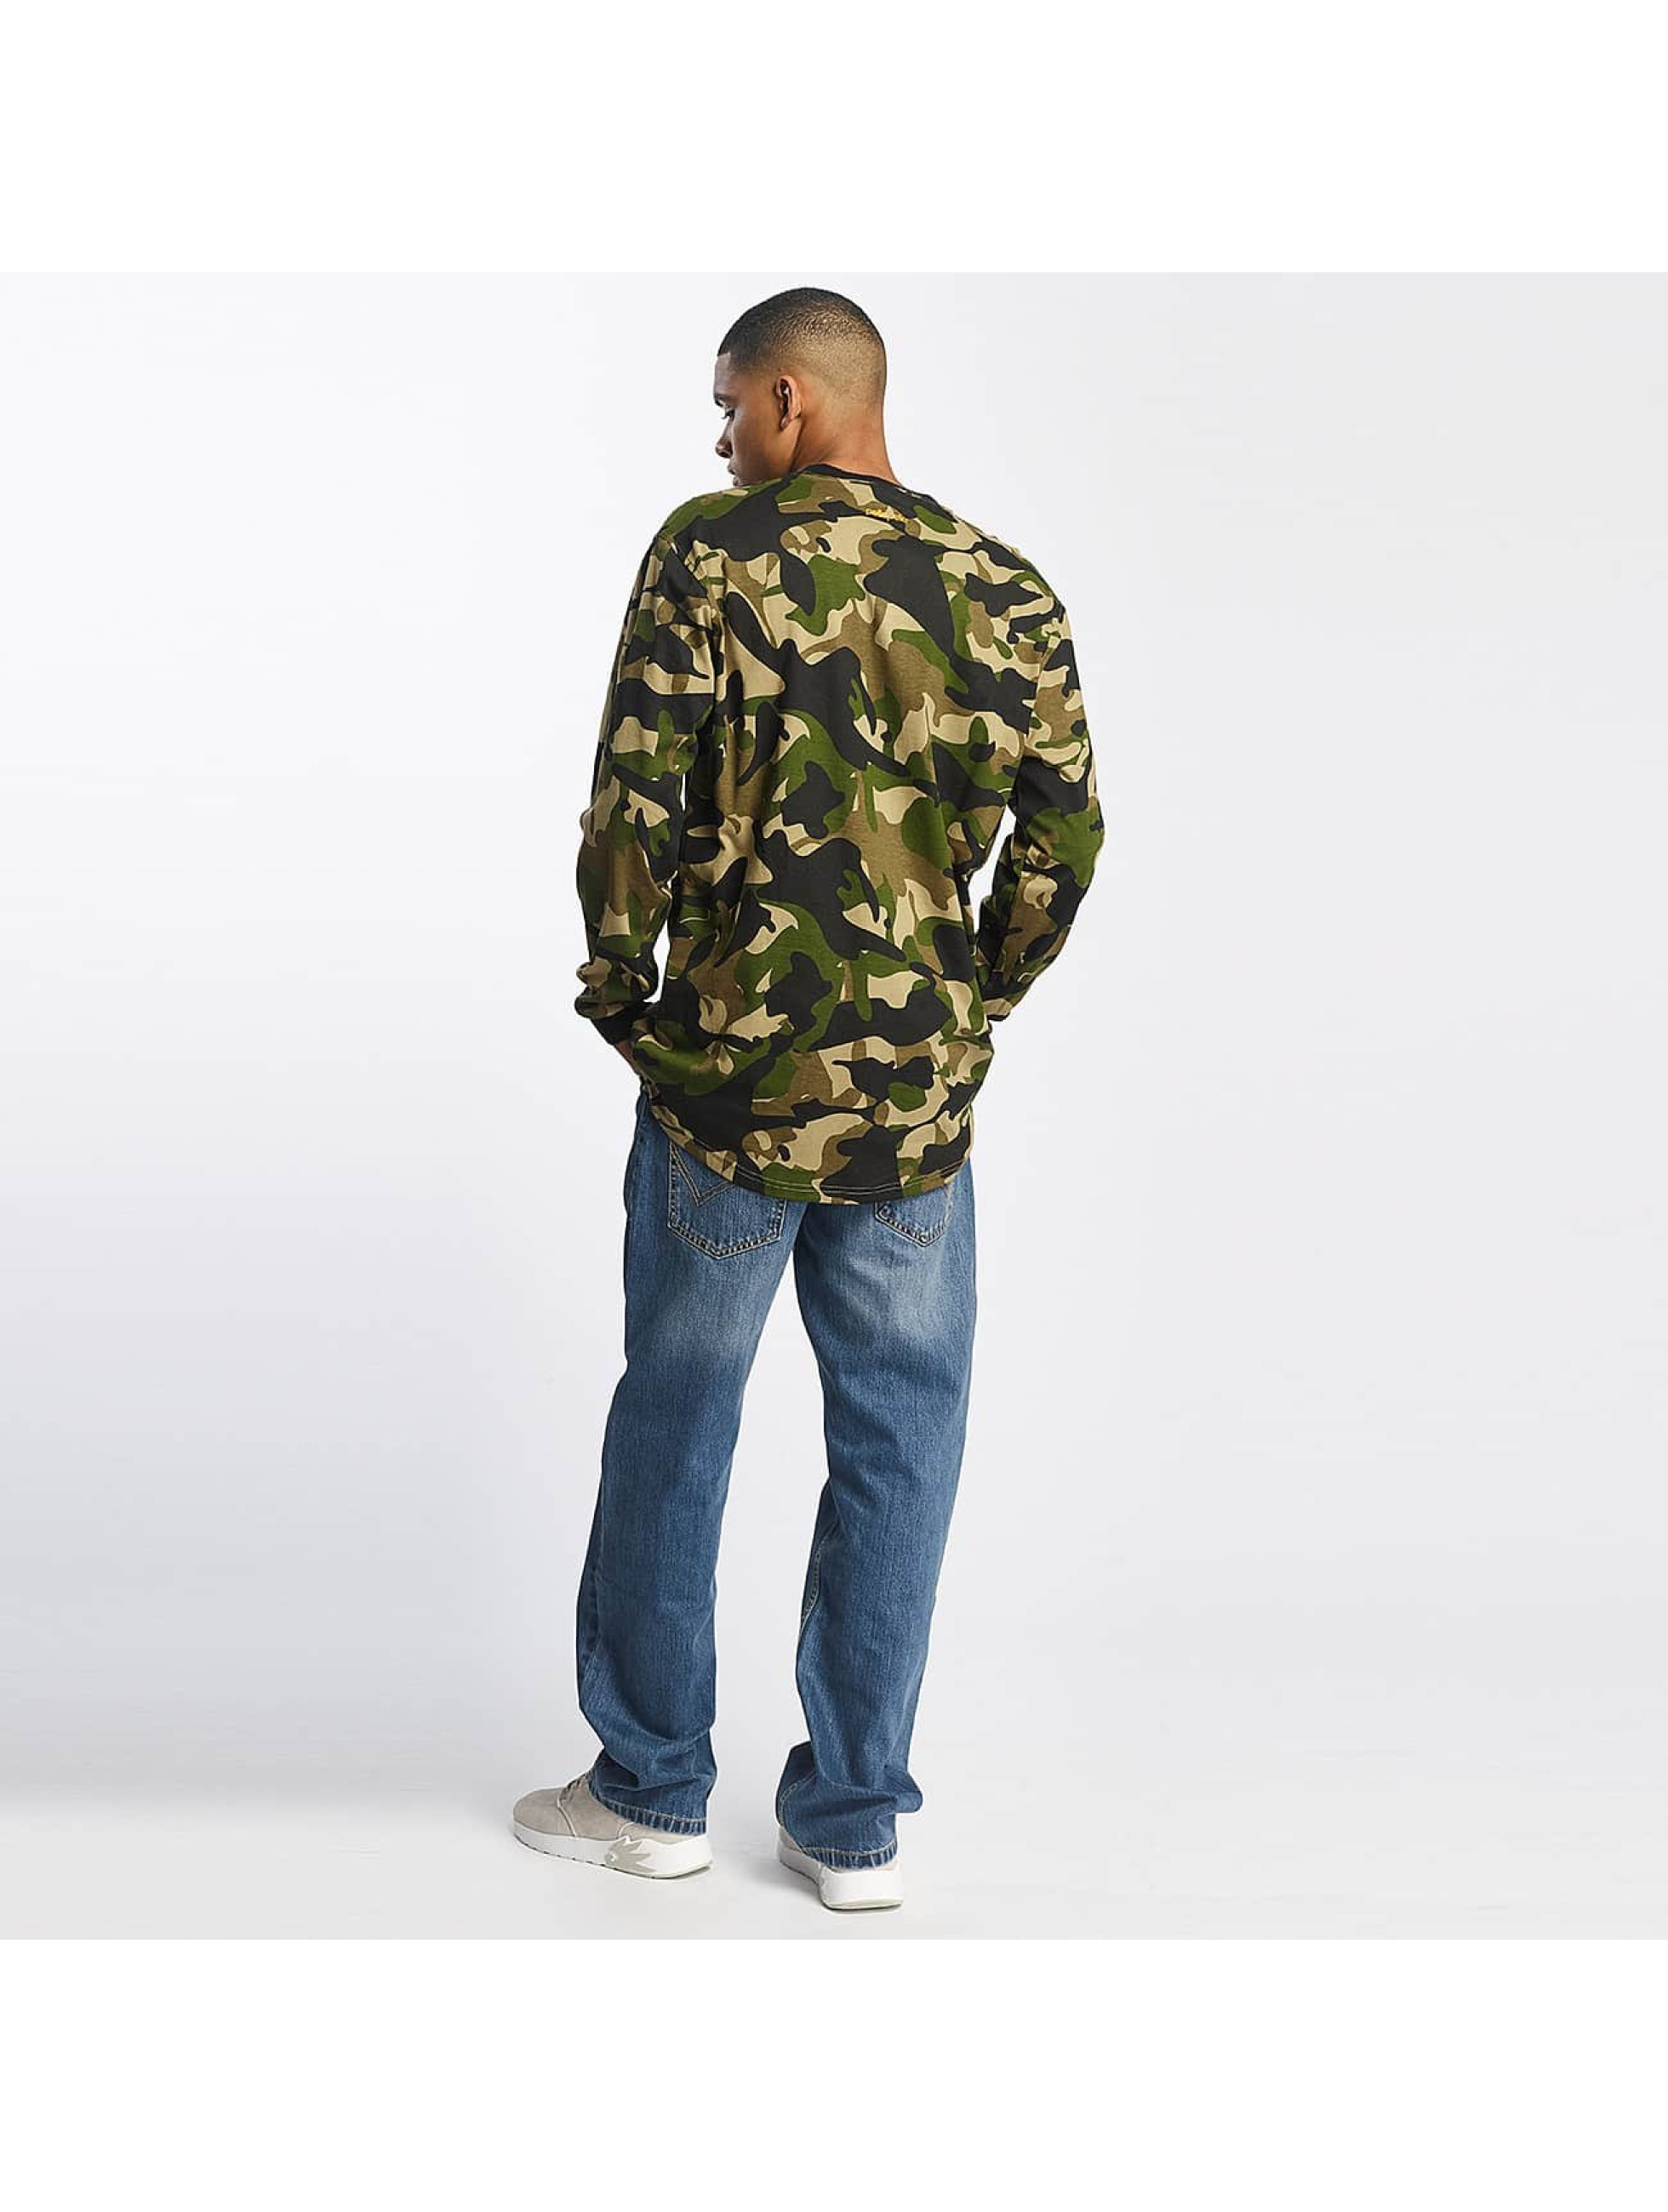 pelle pelle herren longsleeve full camo in camouflage 391199. Black Bedroom Furniture Sets. Home Design Ideas